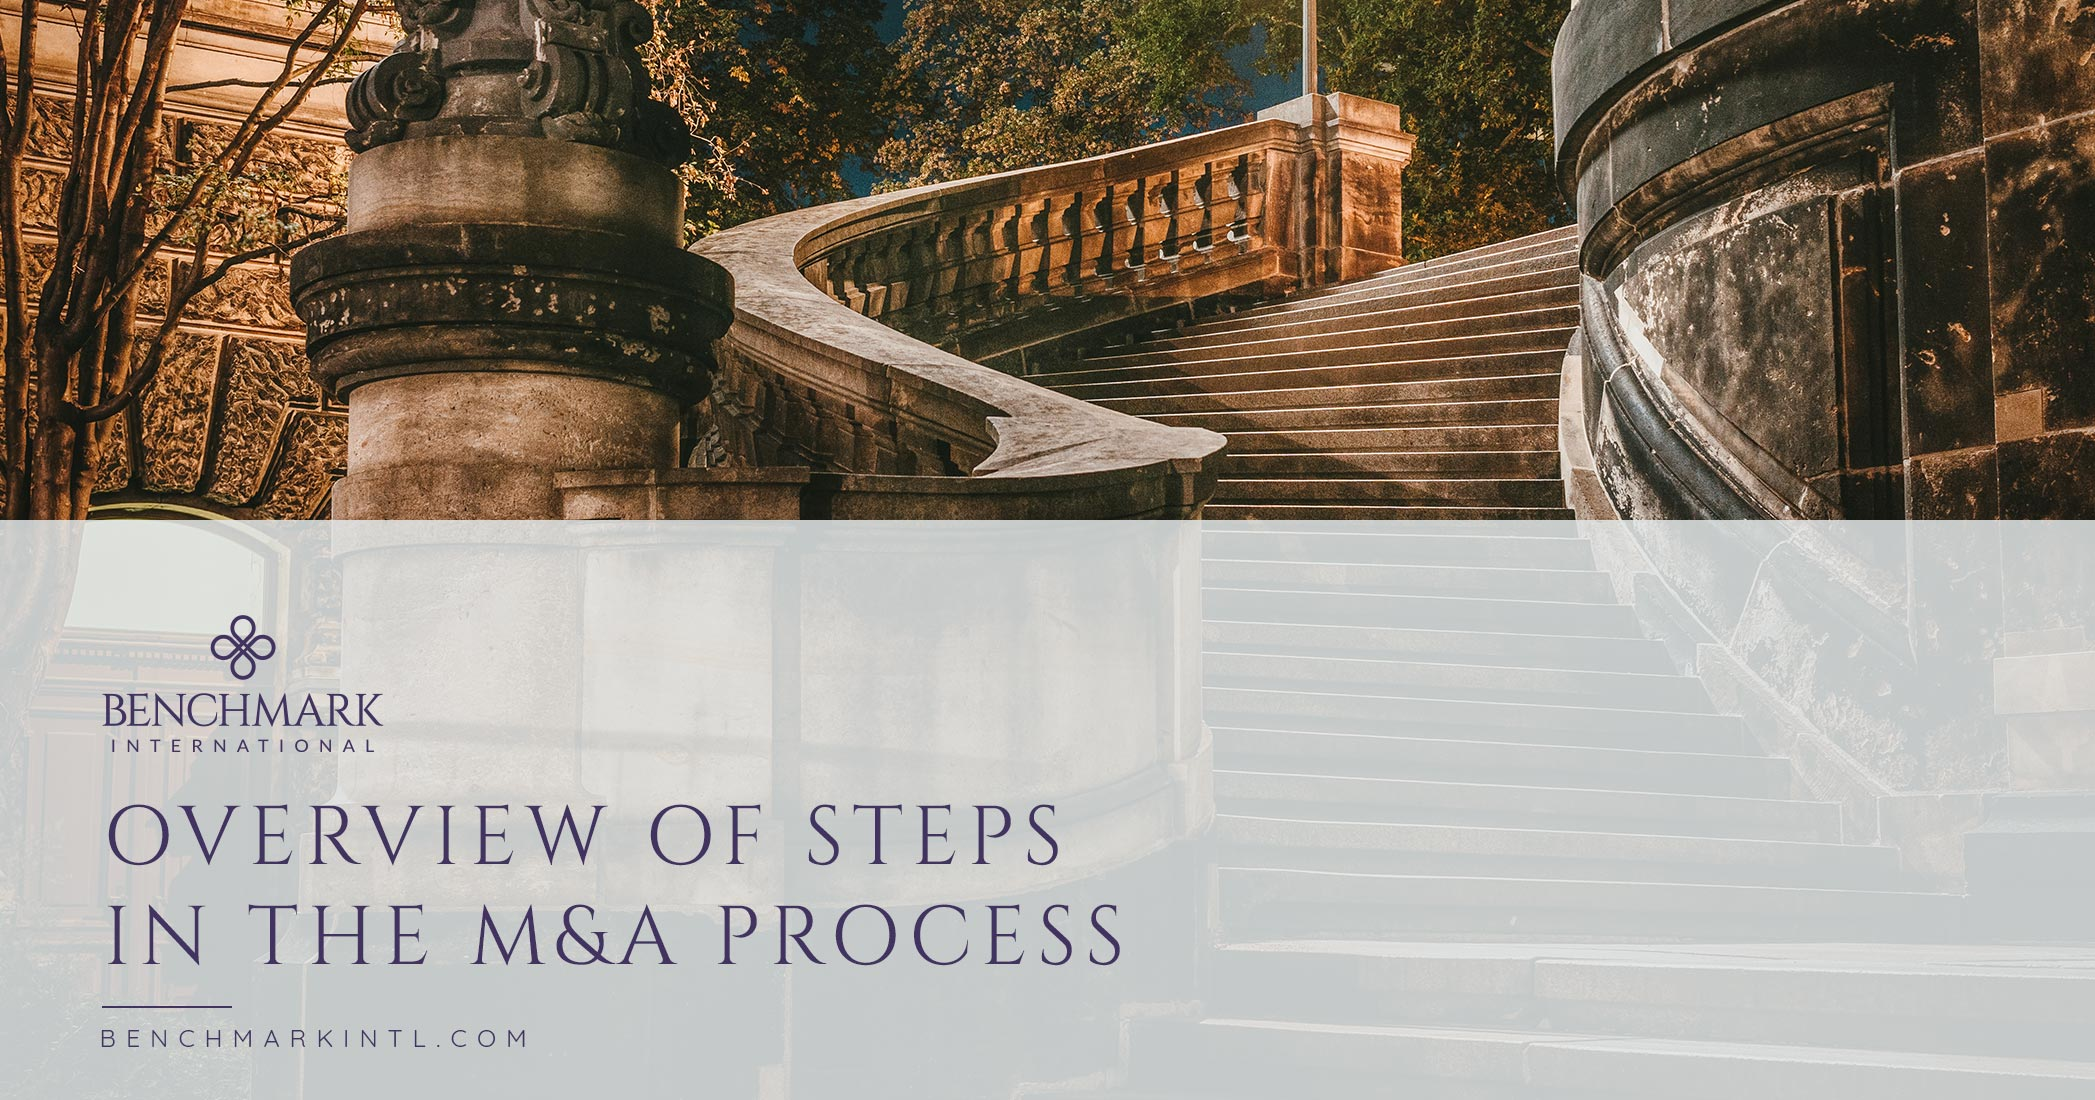 Overview Of Steps In The M&A Process